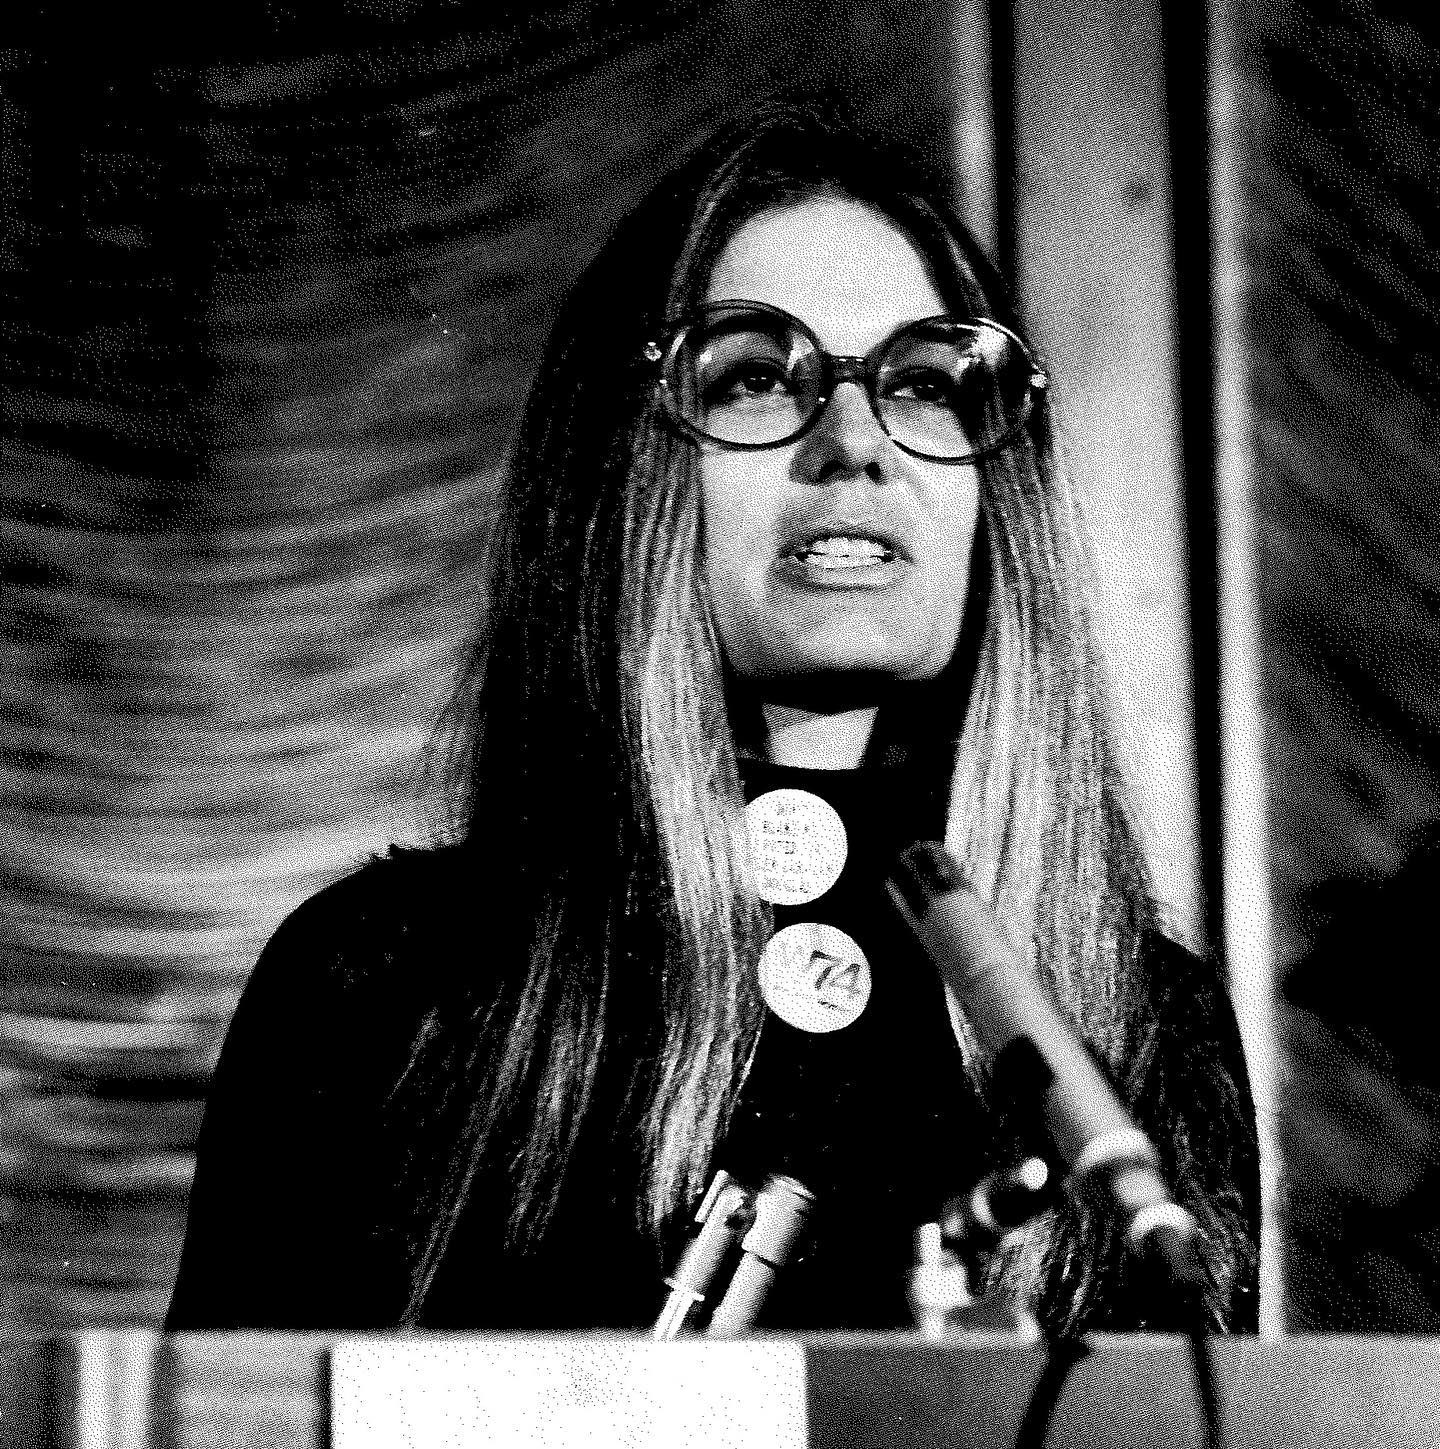 "In going from freelance reporter to feminist icon, Gloria Steinem has stayed busy. In 1956, Steinem earned a BA from Smith College. After a post-graduation law fellowship, she turned to freelance journalism. In 1963, she wrote an article for Show magazine that put her on the map. To write the article, she went undercover as a Playboy Bunny in order to expose exploitative working conditions in Playboy clubs. It was initially difficult for Steinem to find work after ""A Bunny's Tale"" was published, but in 1968 she went on to co-found New York magazine. There, she was able to report on her interests in politics and social issues. In 1969, Steinem attended a ""speak-out"" on abortion legalization to report for the magazine. She described it as the beginning of her life as a ""active feminist"", and allowed her to feel that she shouldn't be ashamed for an illegal abortion she had at the age of 22. In 1971 co-founded both the National Women's Political Caucus and the Women's Action Alliance. In 1972 she co-founded feminist magazine ""Ms."", which would cover the women's liberation movement and women's rights issues specifically. Over her life, Steinem has been heavily involved in political campaigns as well as activism in favor of world peace and reproductive freedom. She is especially known as a speaker and writer in the name of women's rights and feminism. She has received awards for journalism, humanitarianism, gay rights, and women's empowerment, among others. Steinem has also been portrayed on stage, TV, and in film. At age 86, she is still a world-renowned lecturer and organizer.  Steinem is pictured here, speaking at the National Women's Political Caucus at the Four Seasons in 1974. © Fred W. McDarrah/MUUS Collection  #womenshistory #womenshistorymonth #photography #photos #filmphotography #film #filmisnotdead #photoftheday #blackandwhitephotography #muuscollection #gloriasteinem #feminism #liberalfeminism #radicalfeminism #intersectionalfemninism #feminist #womenslib #womensliberations #womensrights #smithcollege #msmagazine #newyorkmagazine #showmagazine #abunnystale #equalrightsamendment #era #prochoice #activism #journalism #fredmcdarrah"